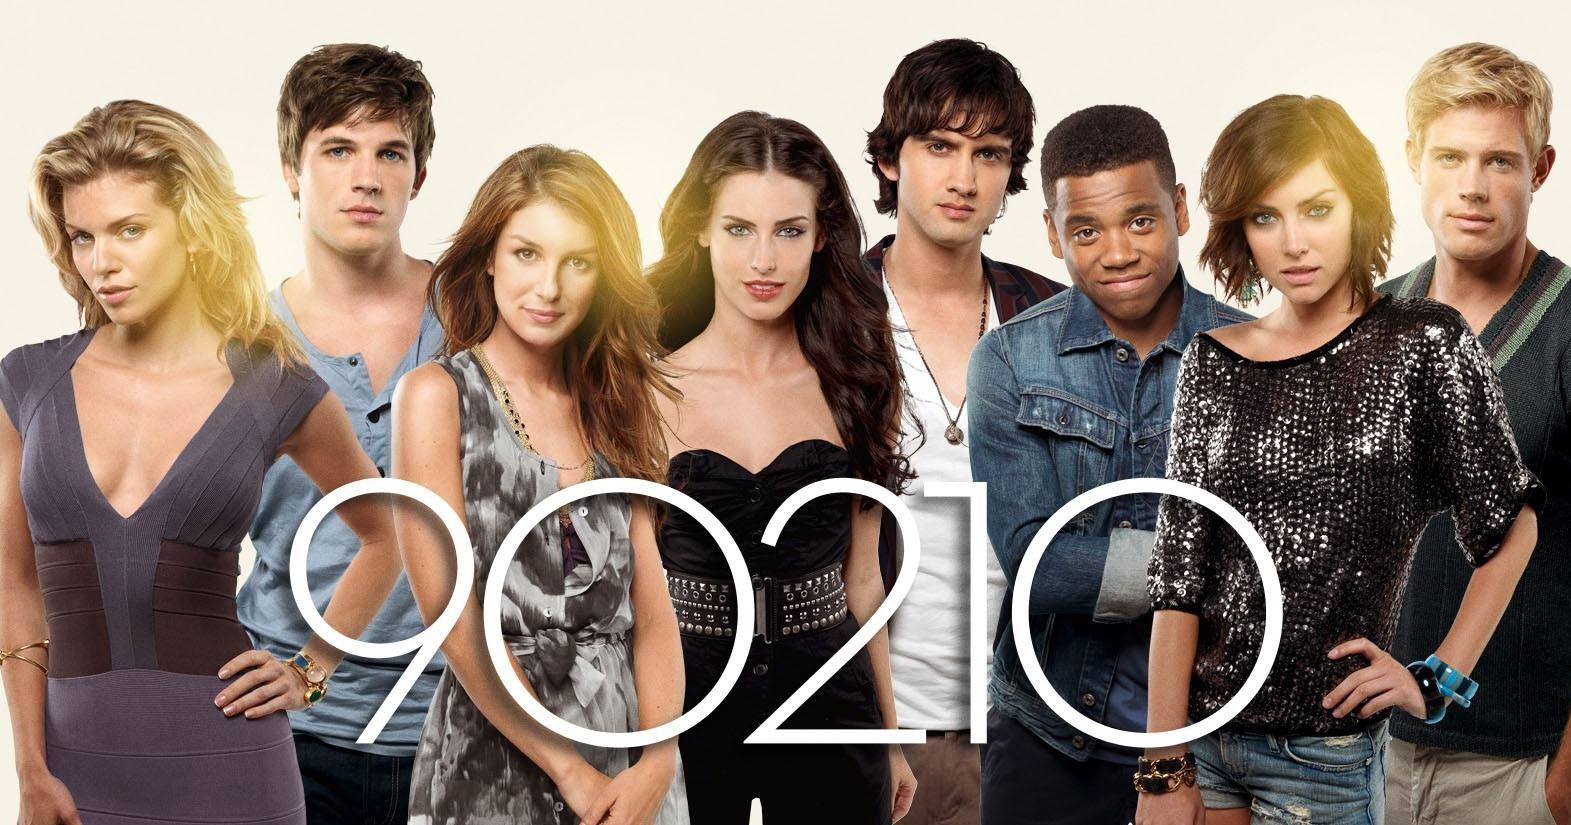 God my all time favorite 90210 :)